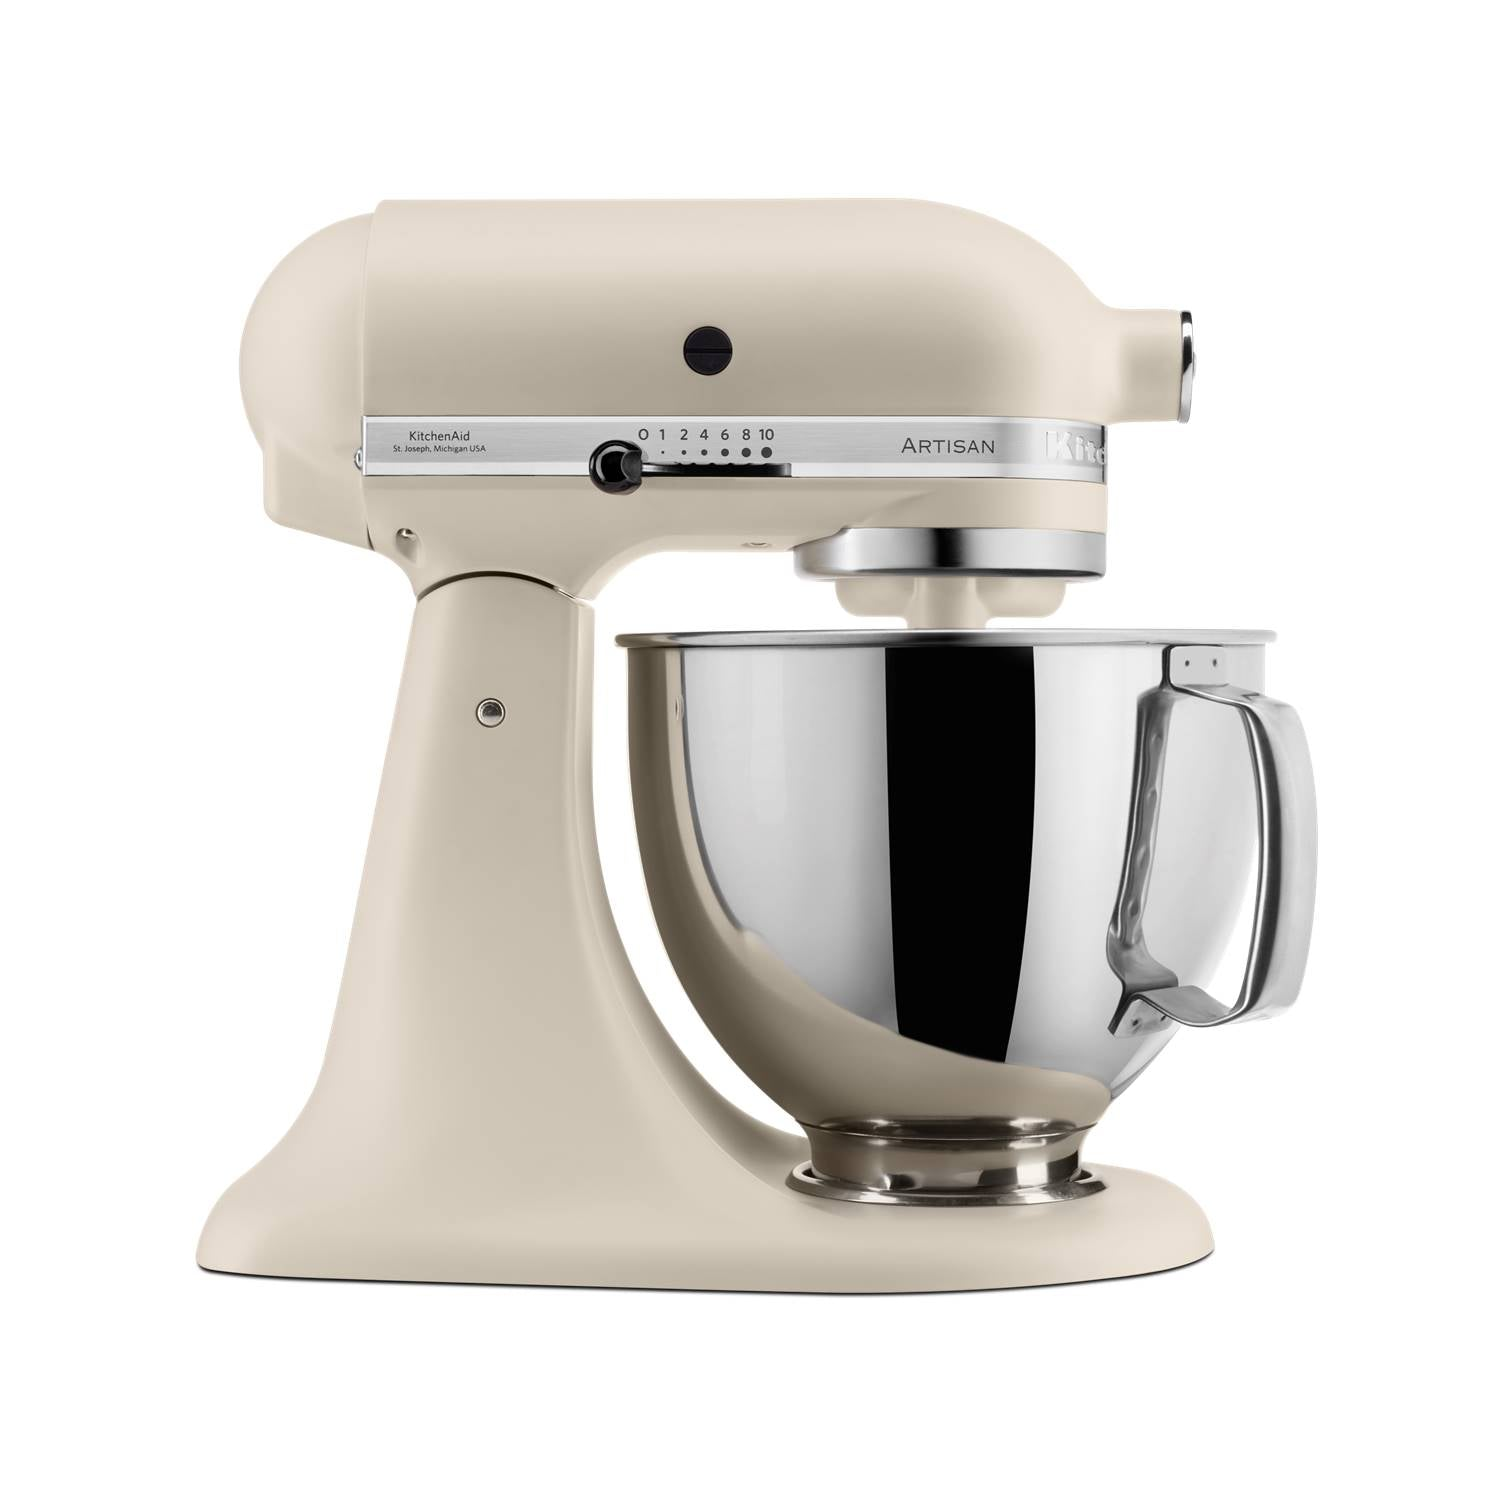 4.8L Mixer in Fresh Linen